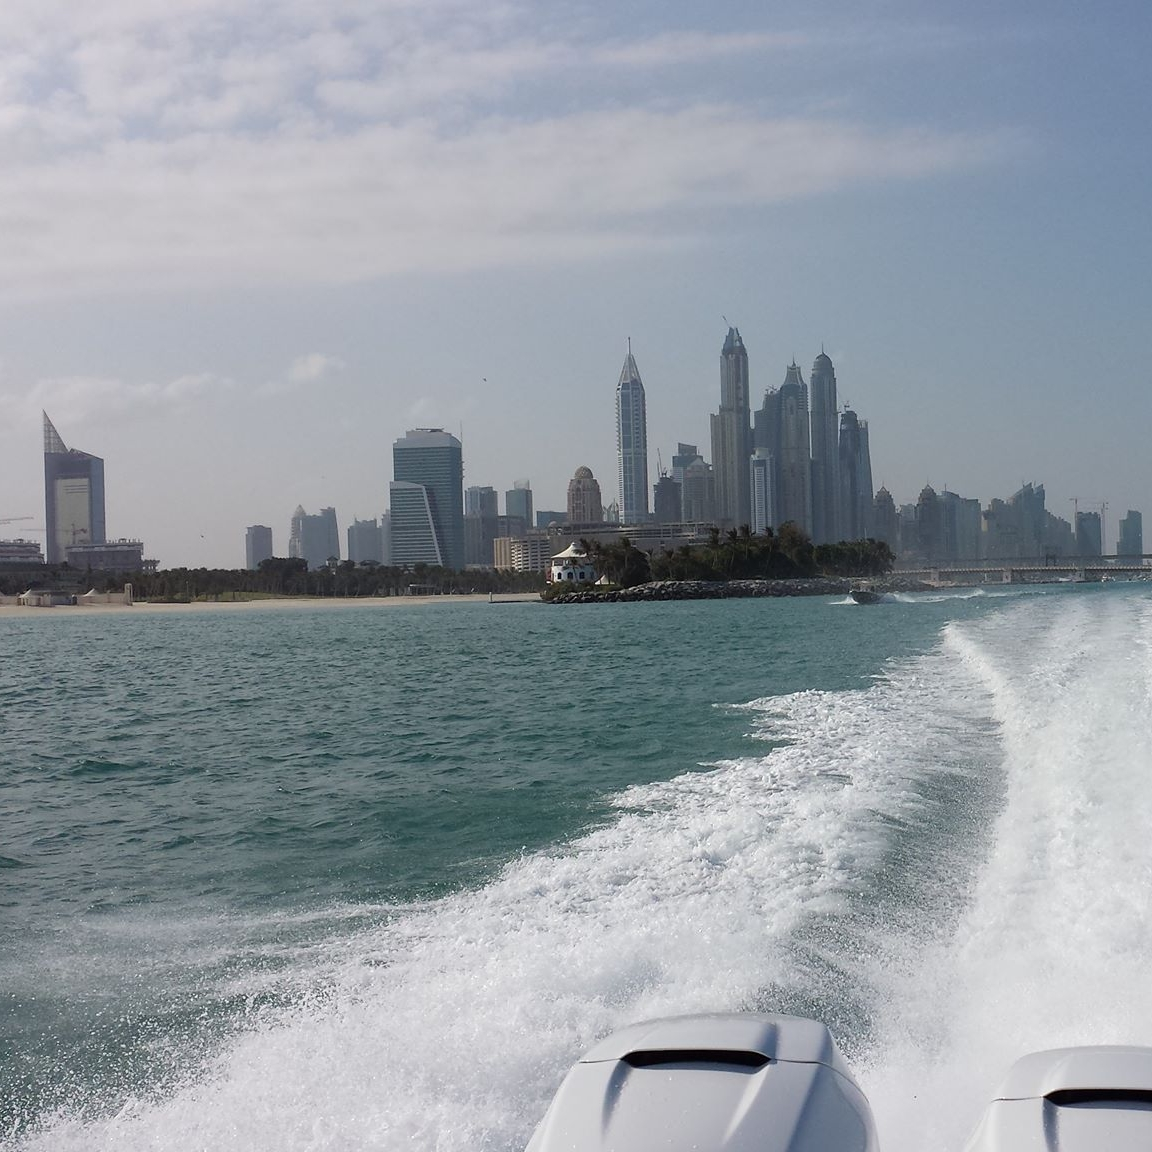 This is looking back toward Dubai marina from one of the P38s blasting along at about 60 knots.